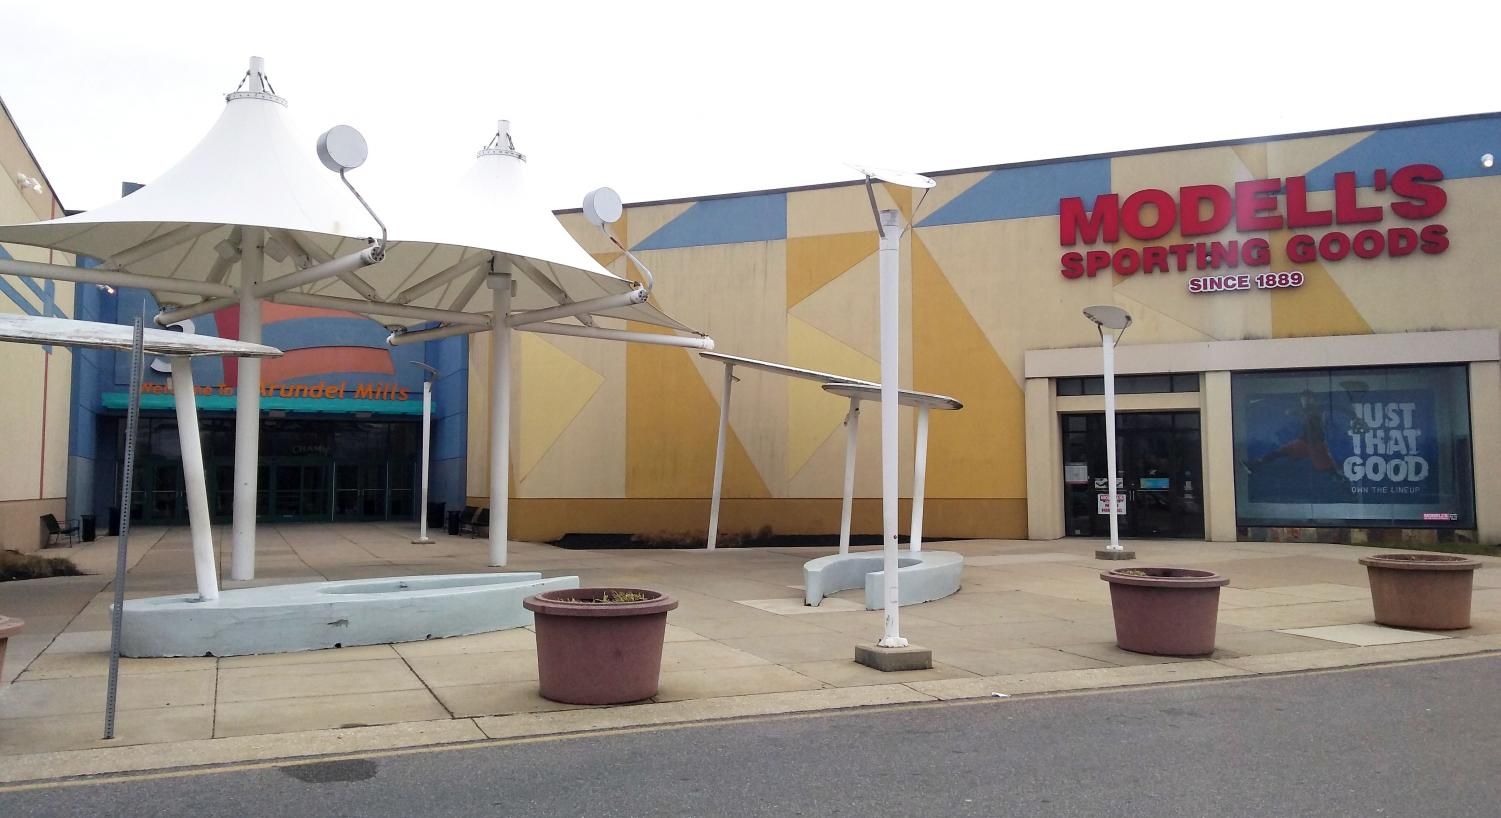 A shooting at Arundel Mills Mall on Saturday occurred at this entrance.